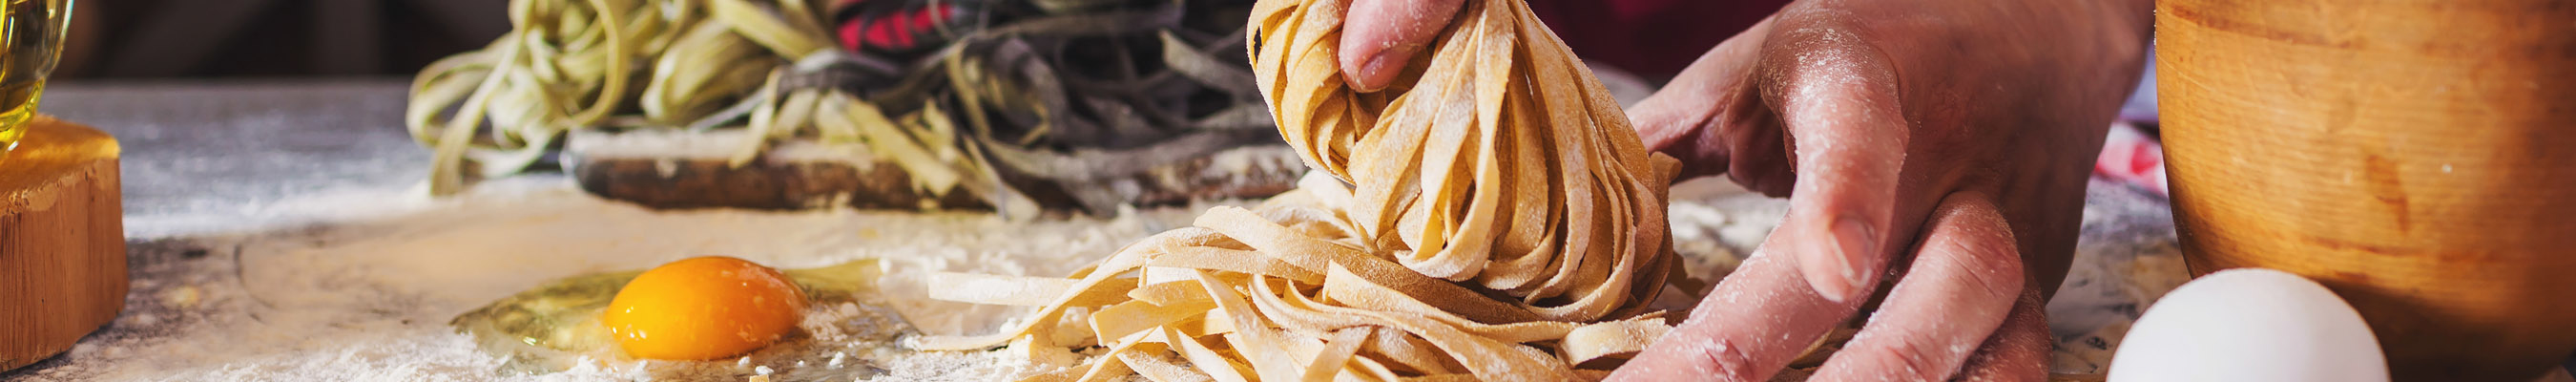 banner-themacatering-pasta.jpg